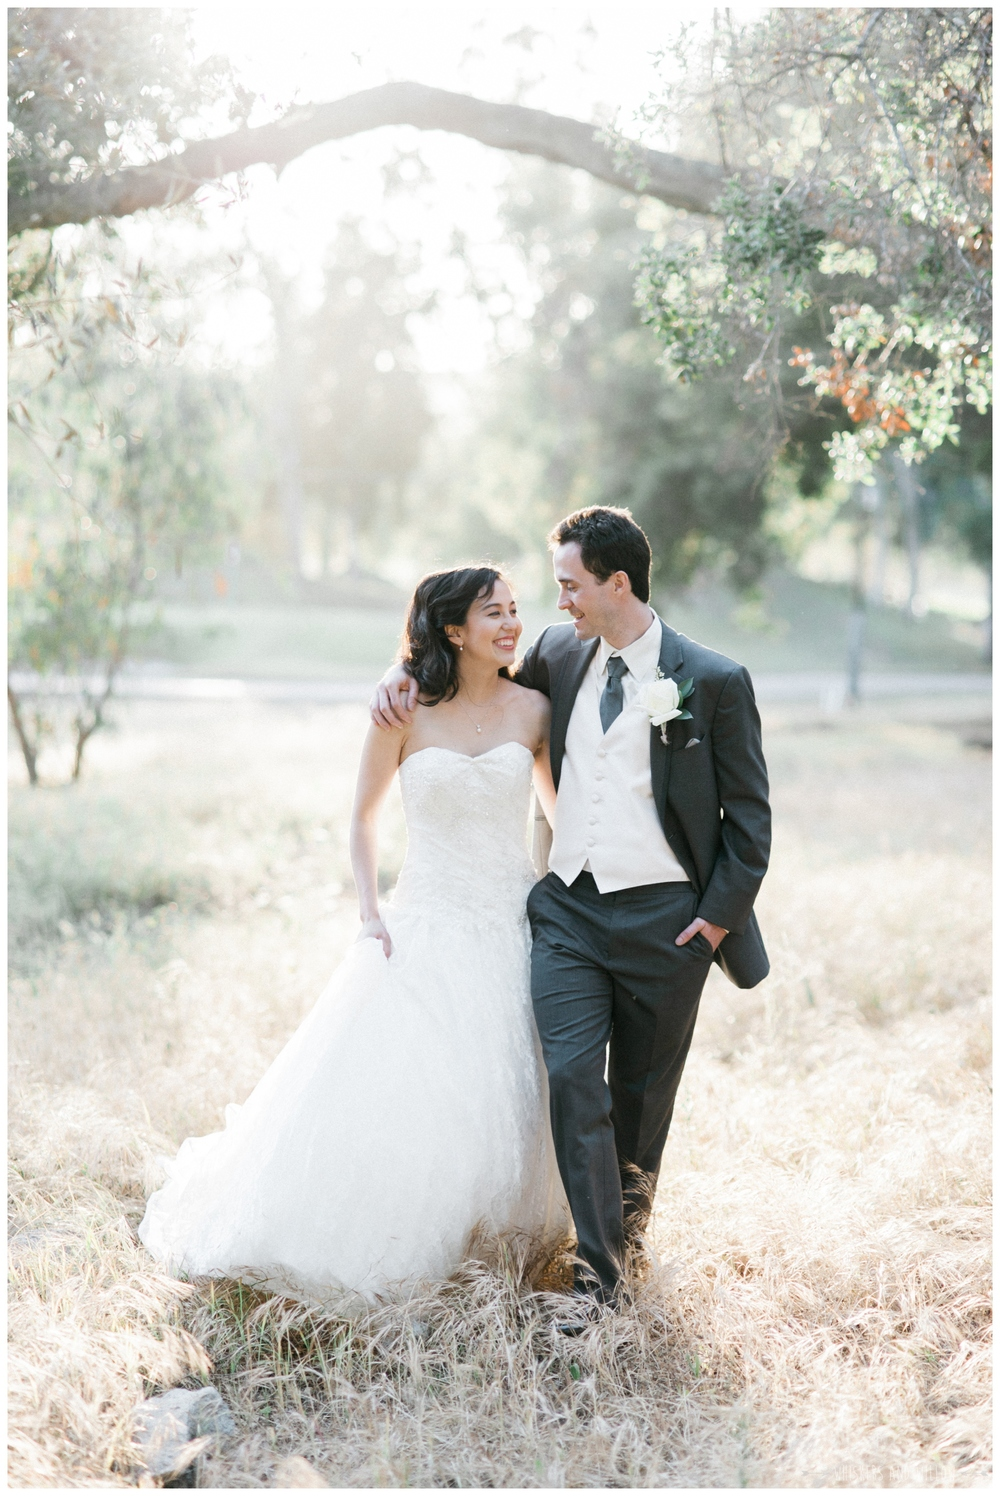 Mt Woodson Castle Wedding - Bride and Groom Portrait - San Diego Wedding Photographer - Whiskers and Willow Photography